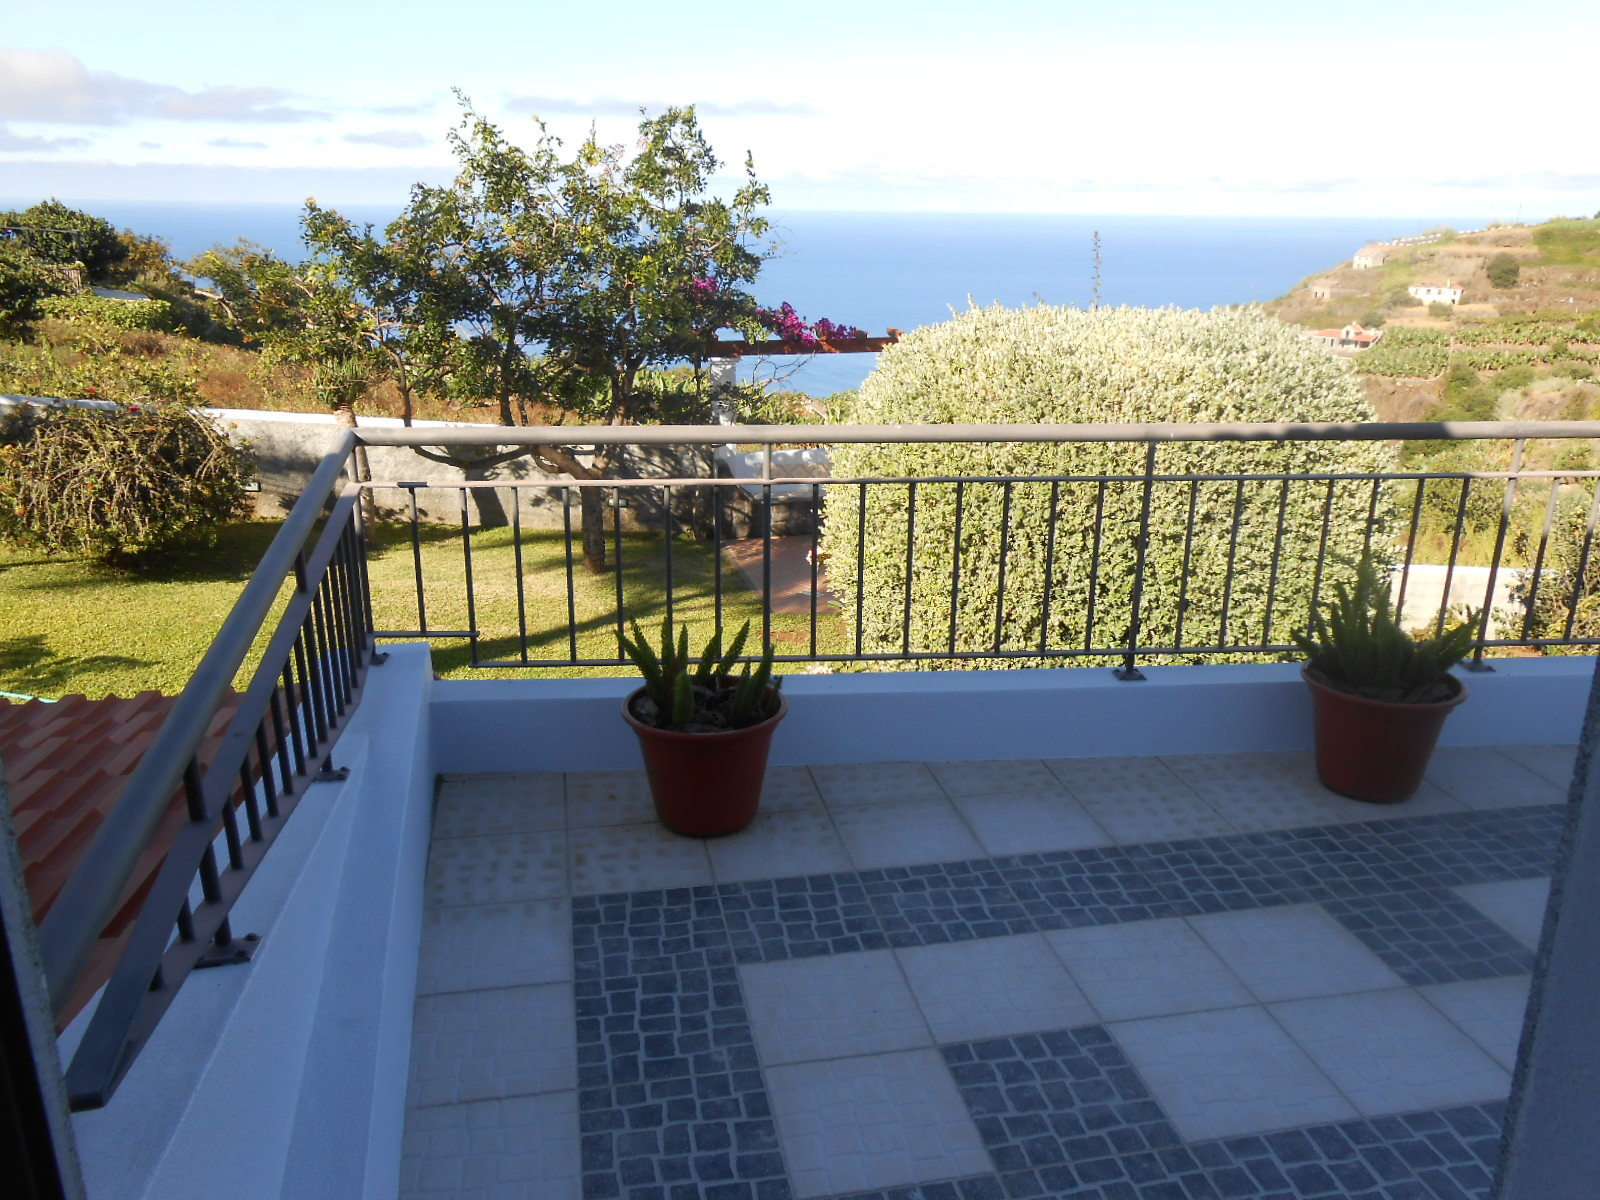 Natural stone house renovated with charm, splendid ocean view.